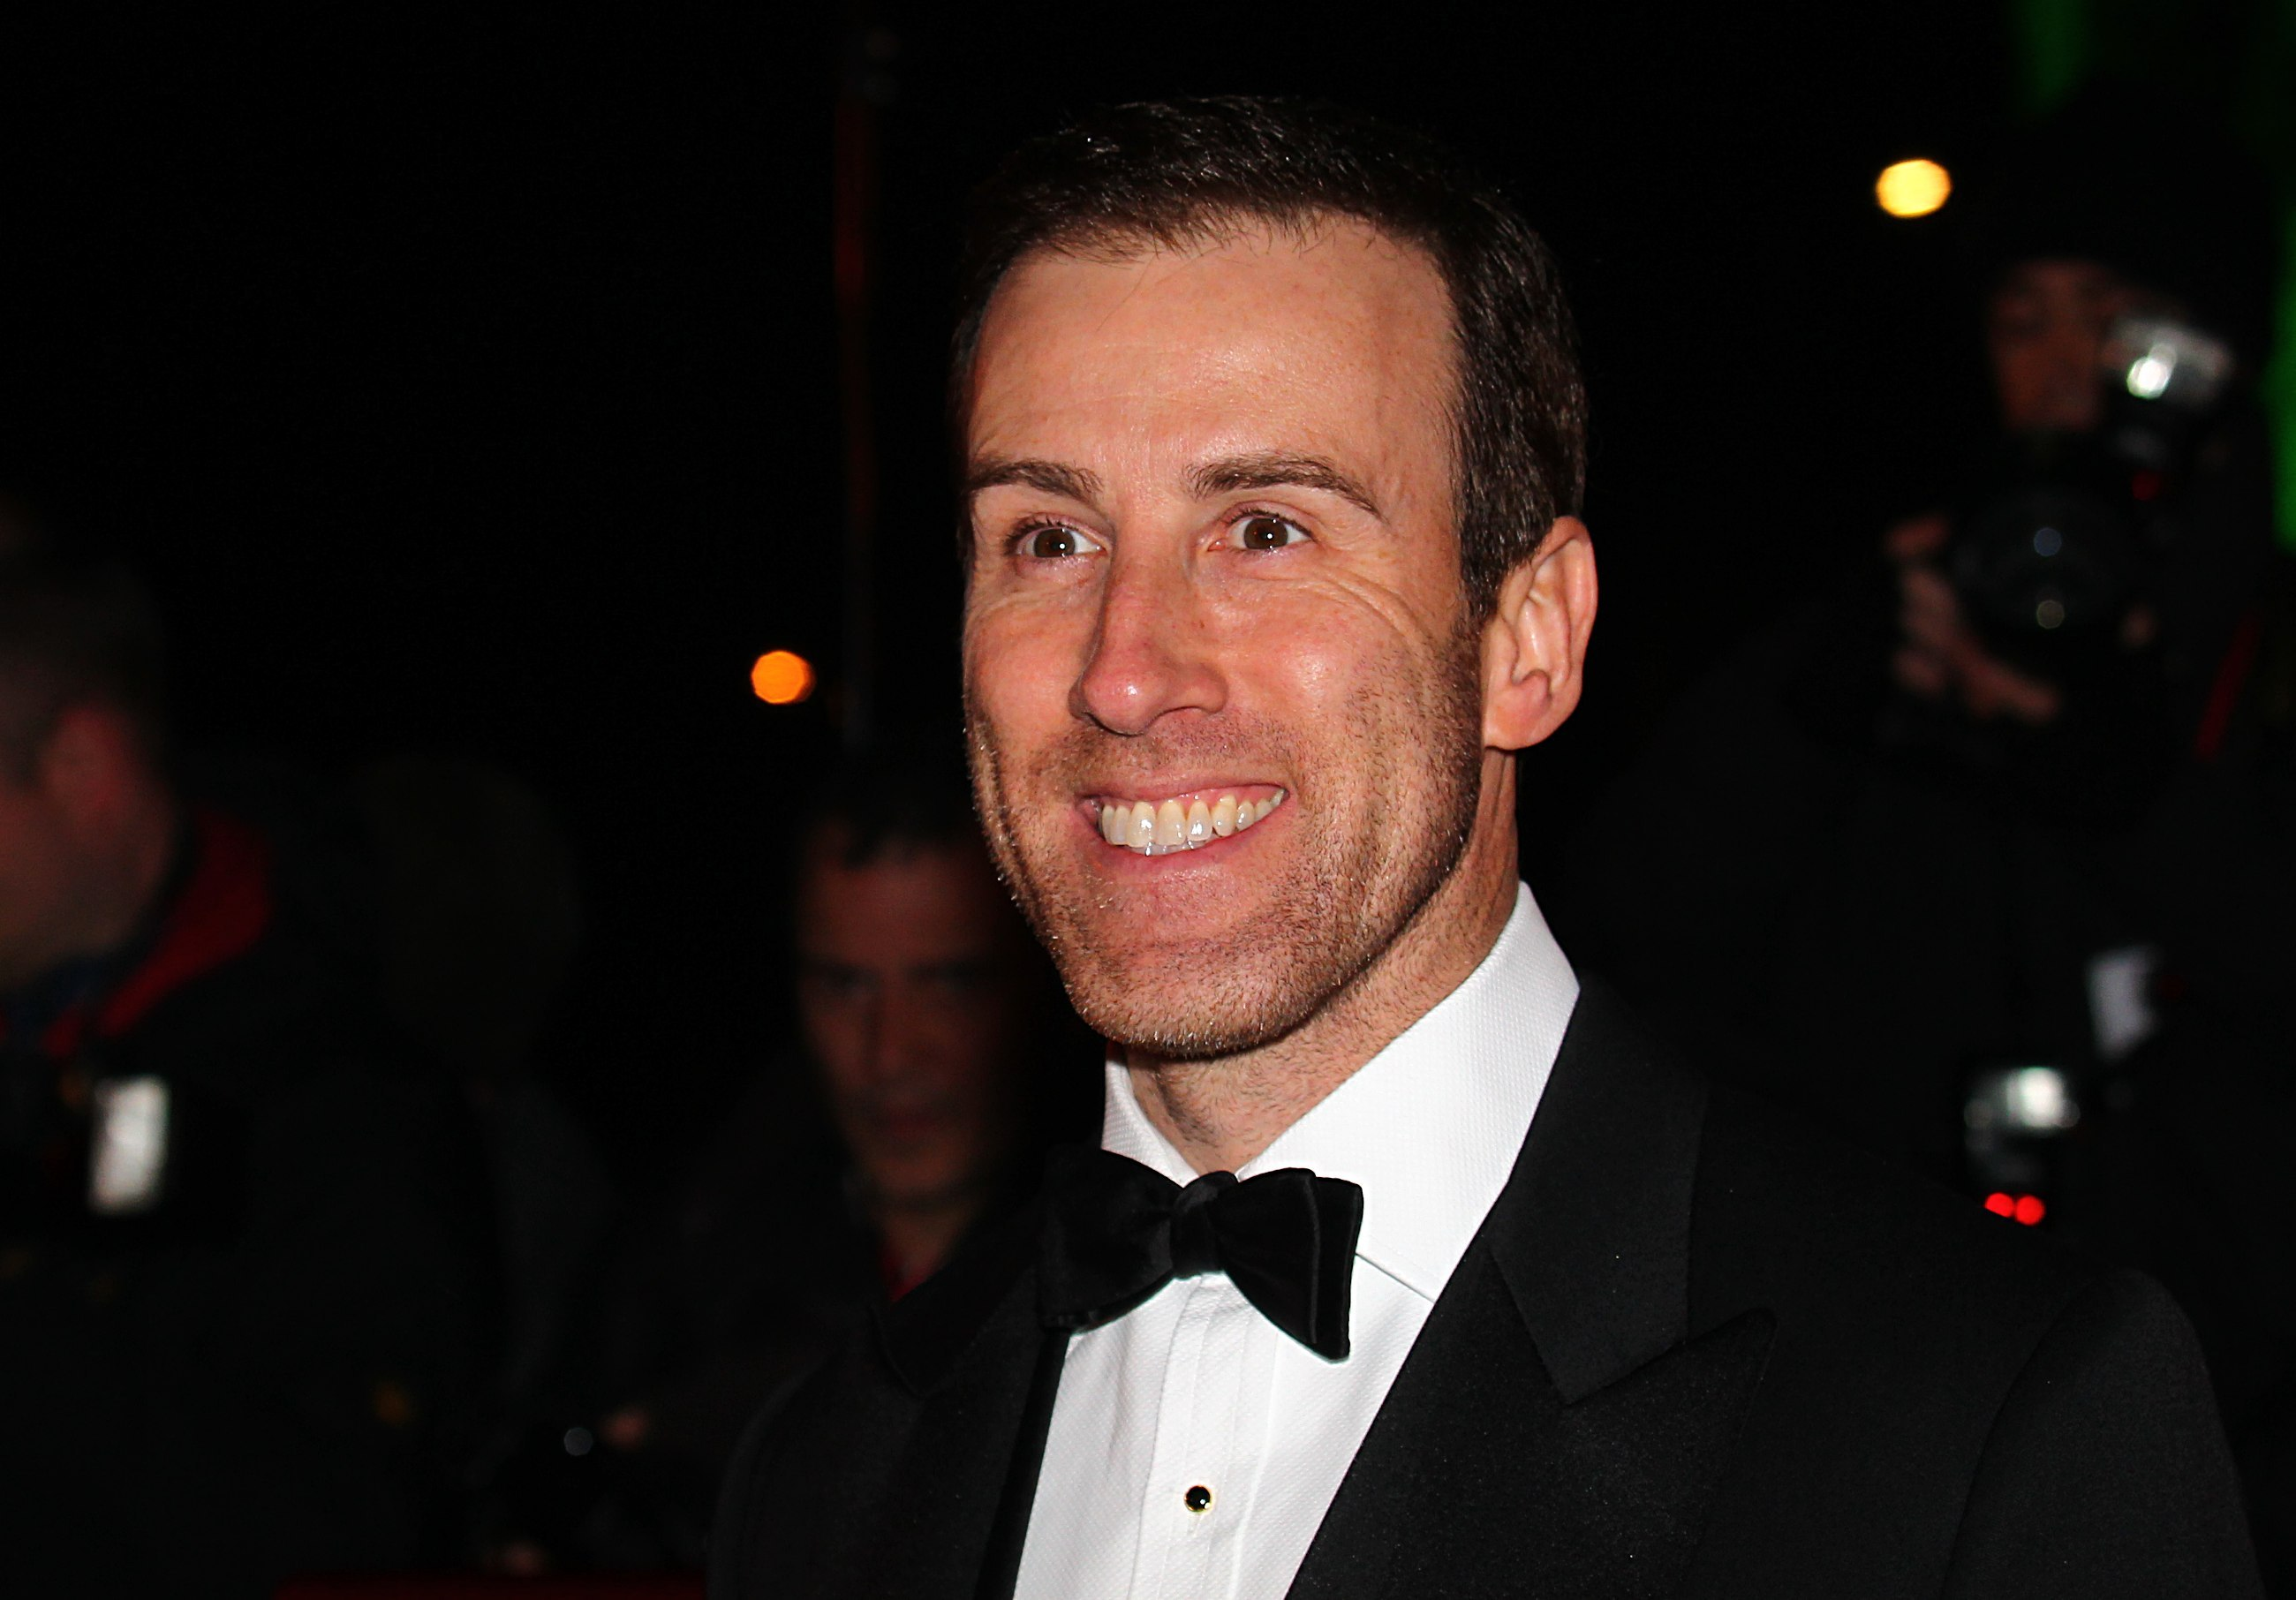 Anton Du Beke addresses strictly judge rumours